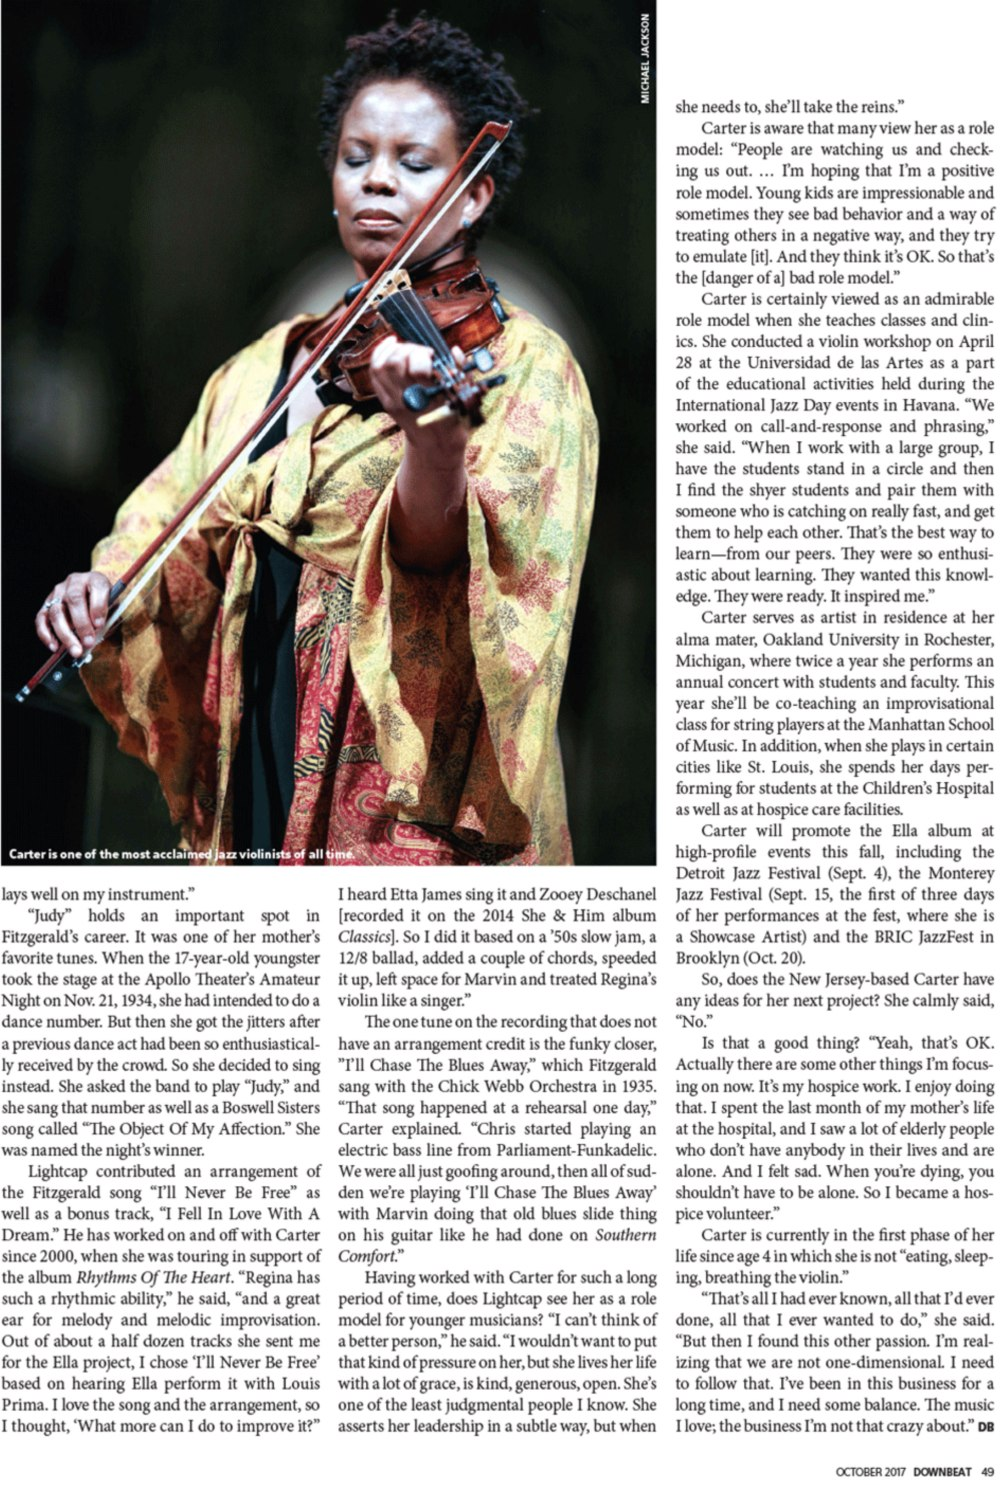 Regina-Carter-Feature_DownBeat-October-2017-pag-49